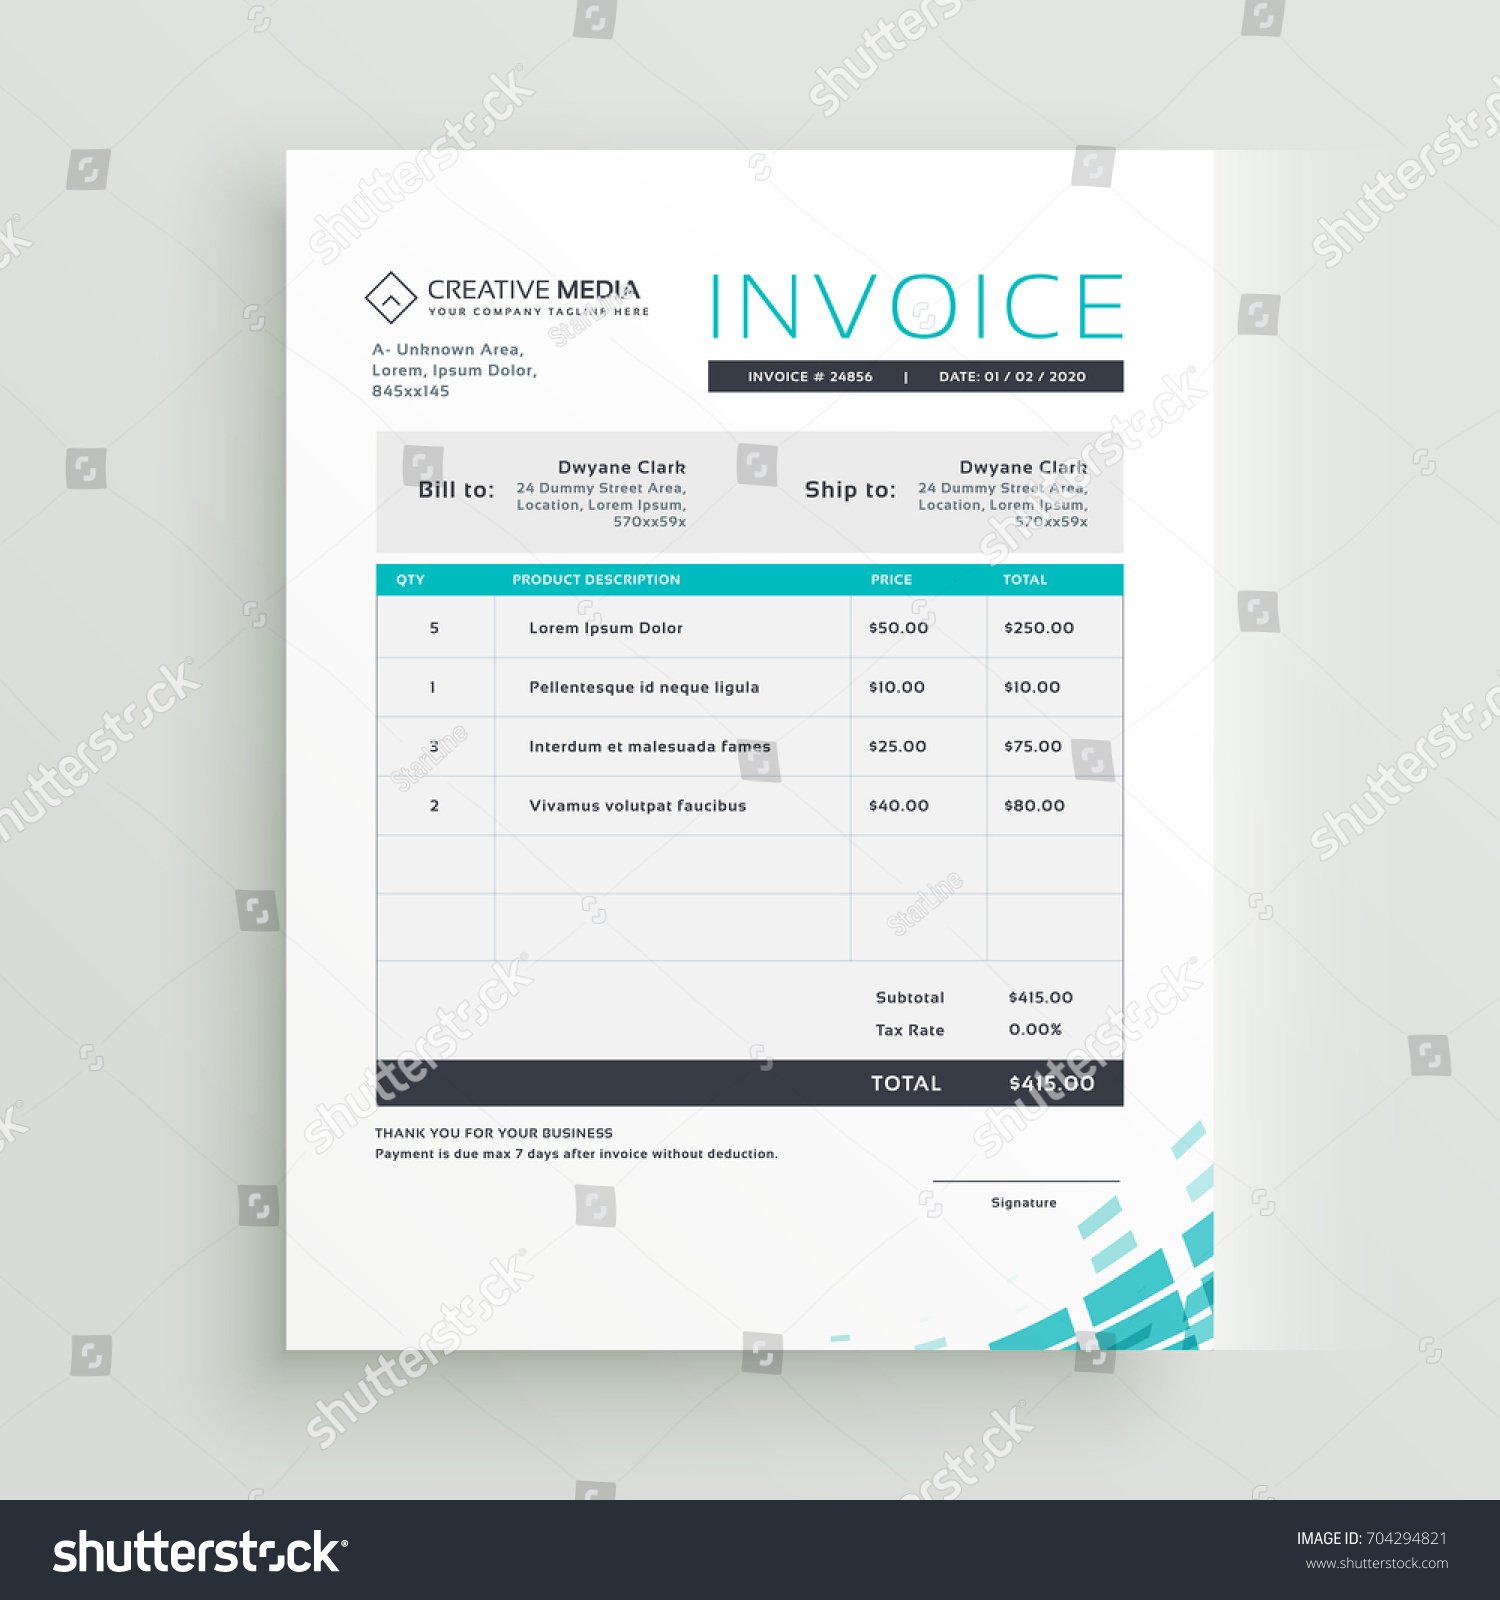 Modern Invoice Template Vector Design Stock Vector - Modern invoice template